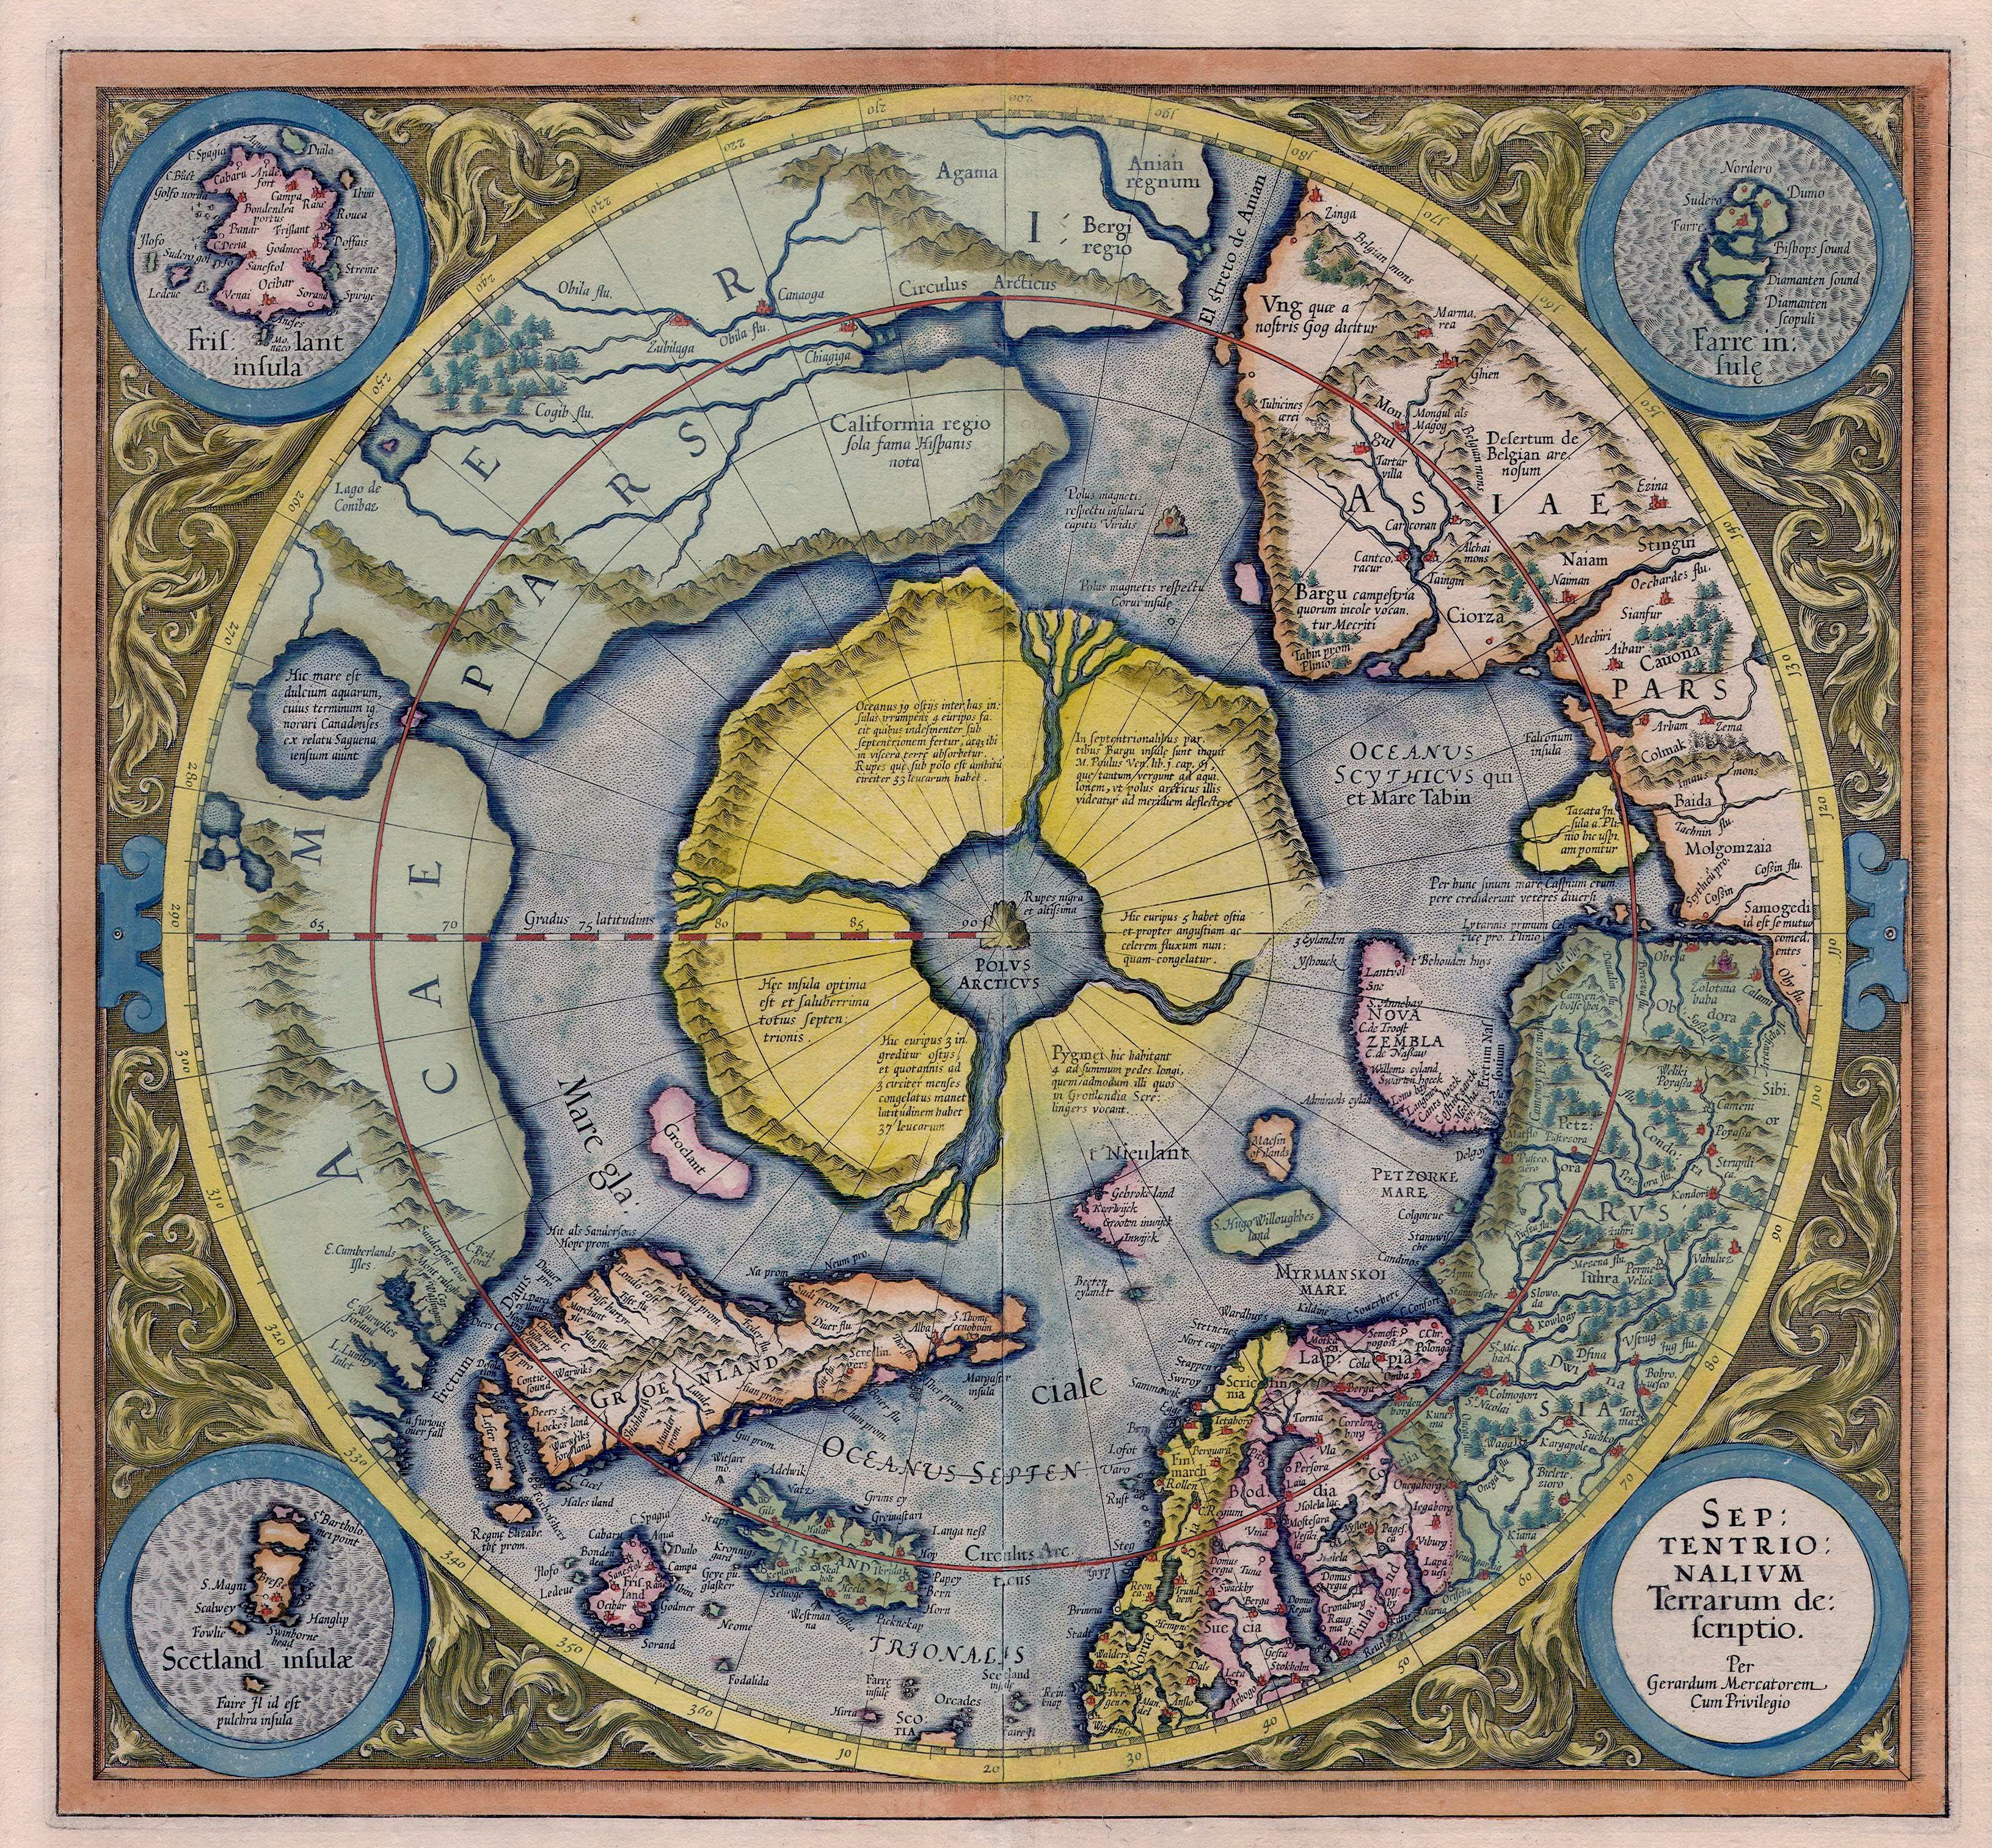 Flat earth decoded part 2 north pole the biggest secret proof of flat earth decoded part 2 north pole the biggest secret proof of eden rosette delacroix gumiabroncs Image collections